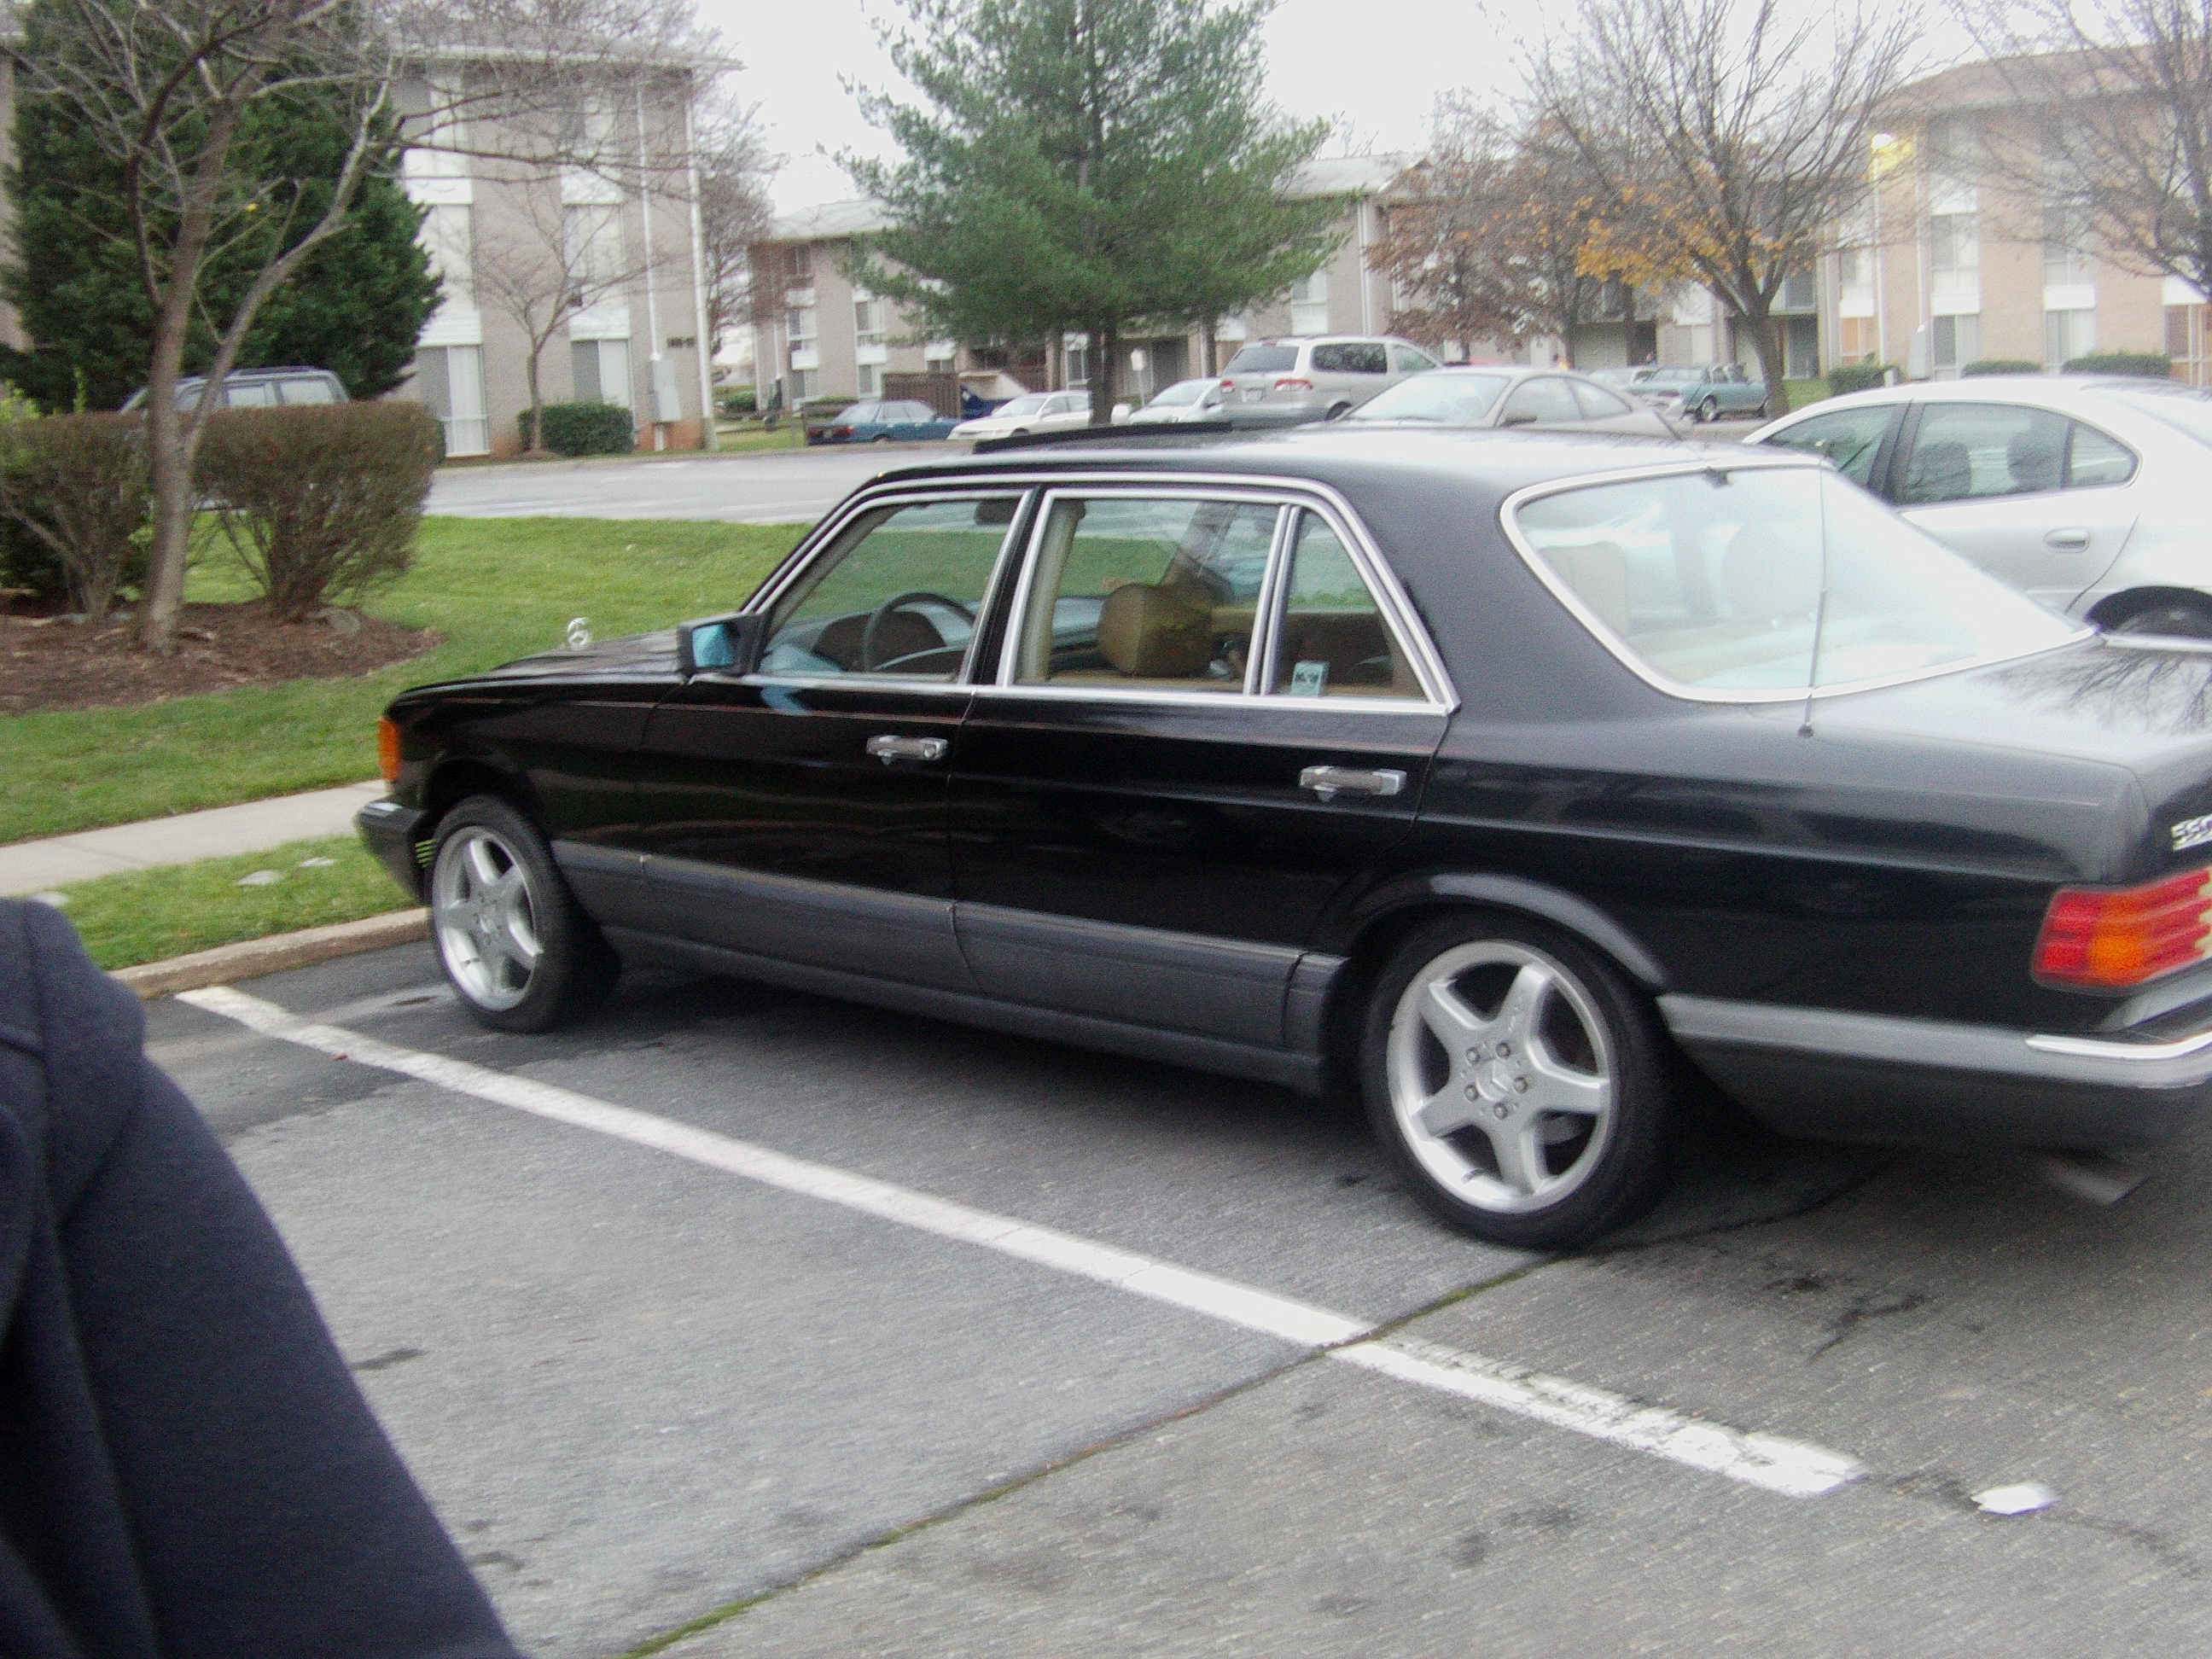 moneyclipG's 1989 Mercedes-Benz 560SEL